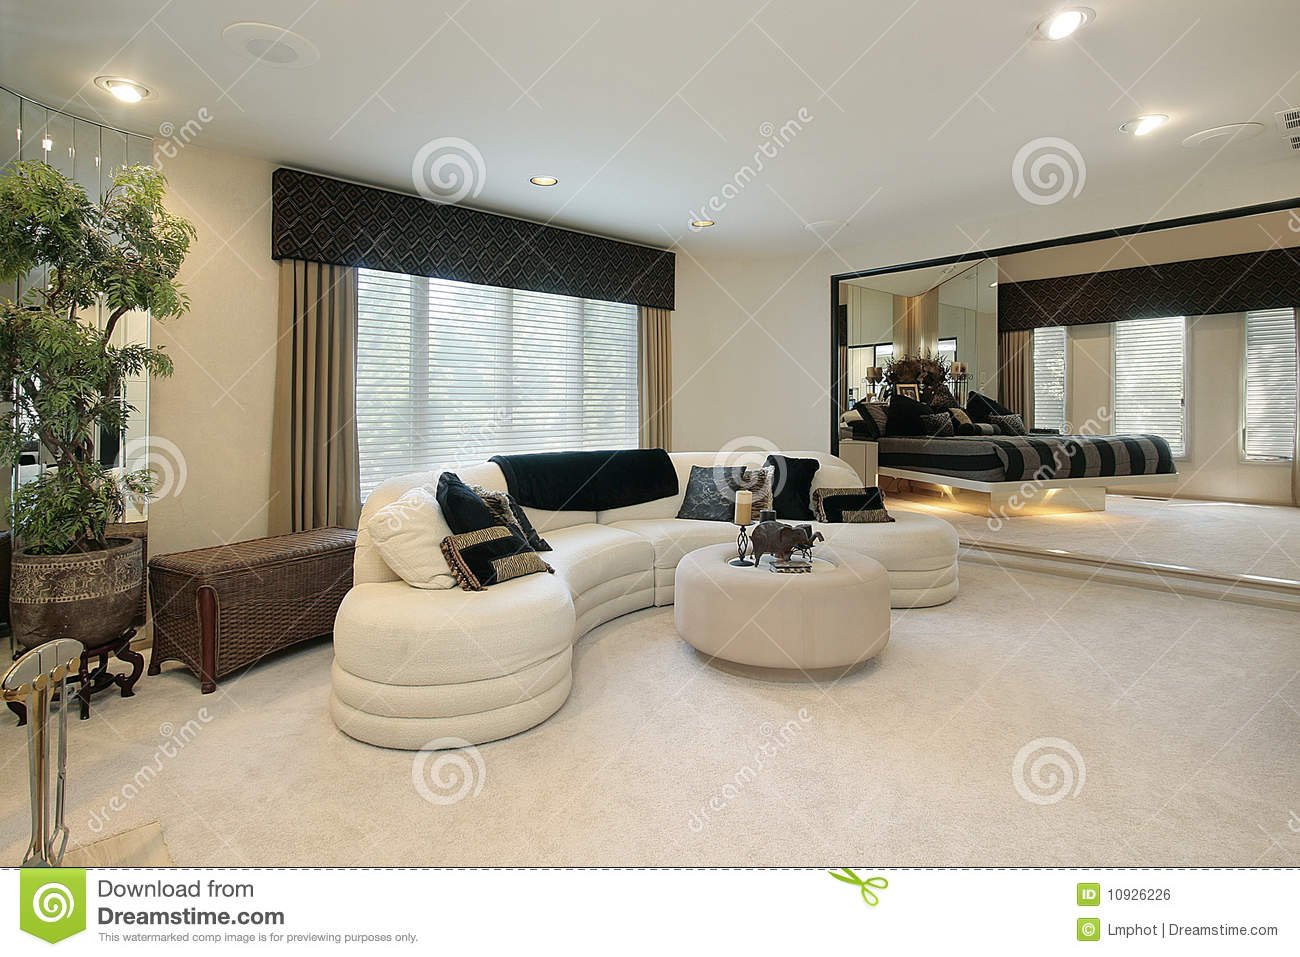 living room with mirrored walls royalty free stock image